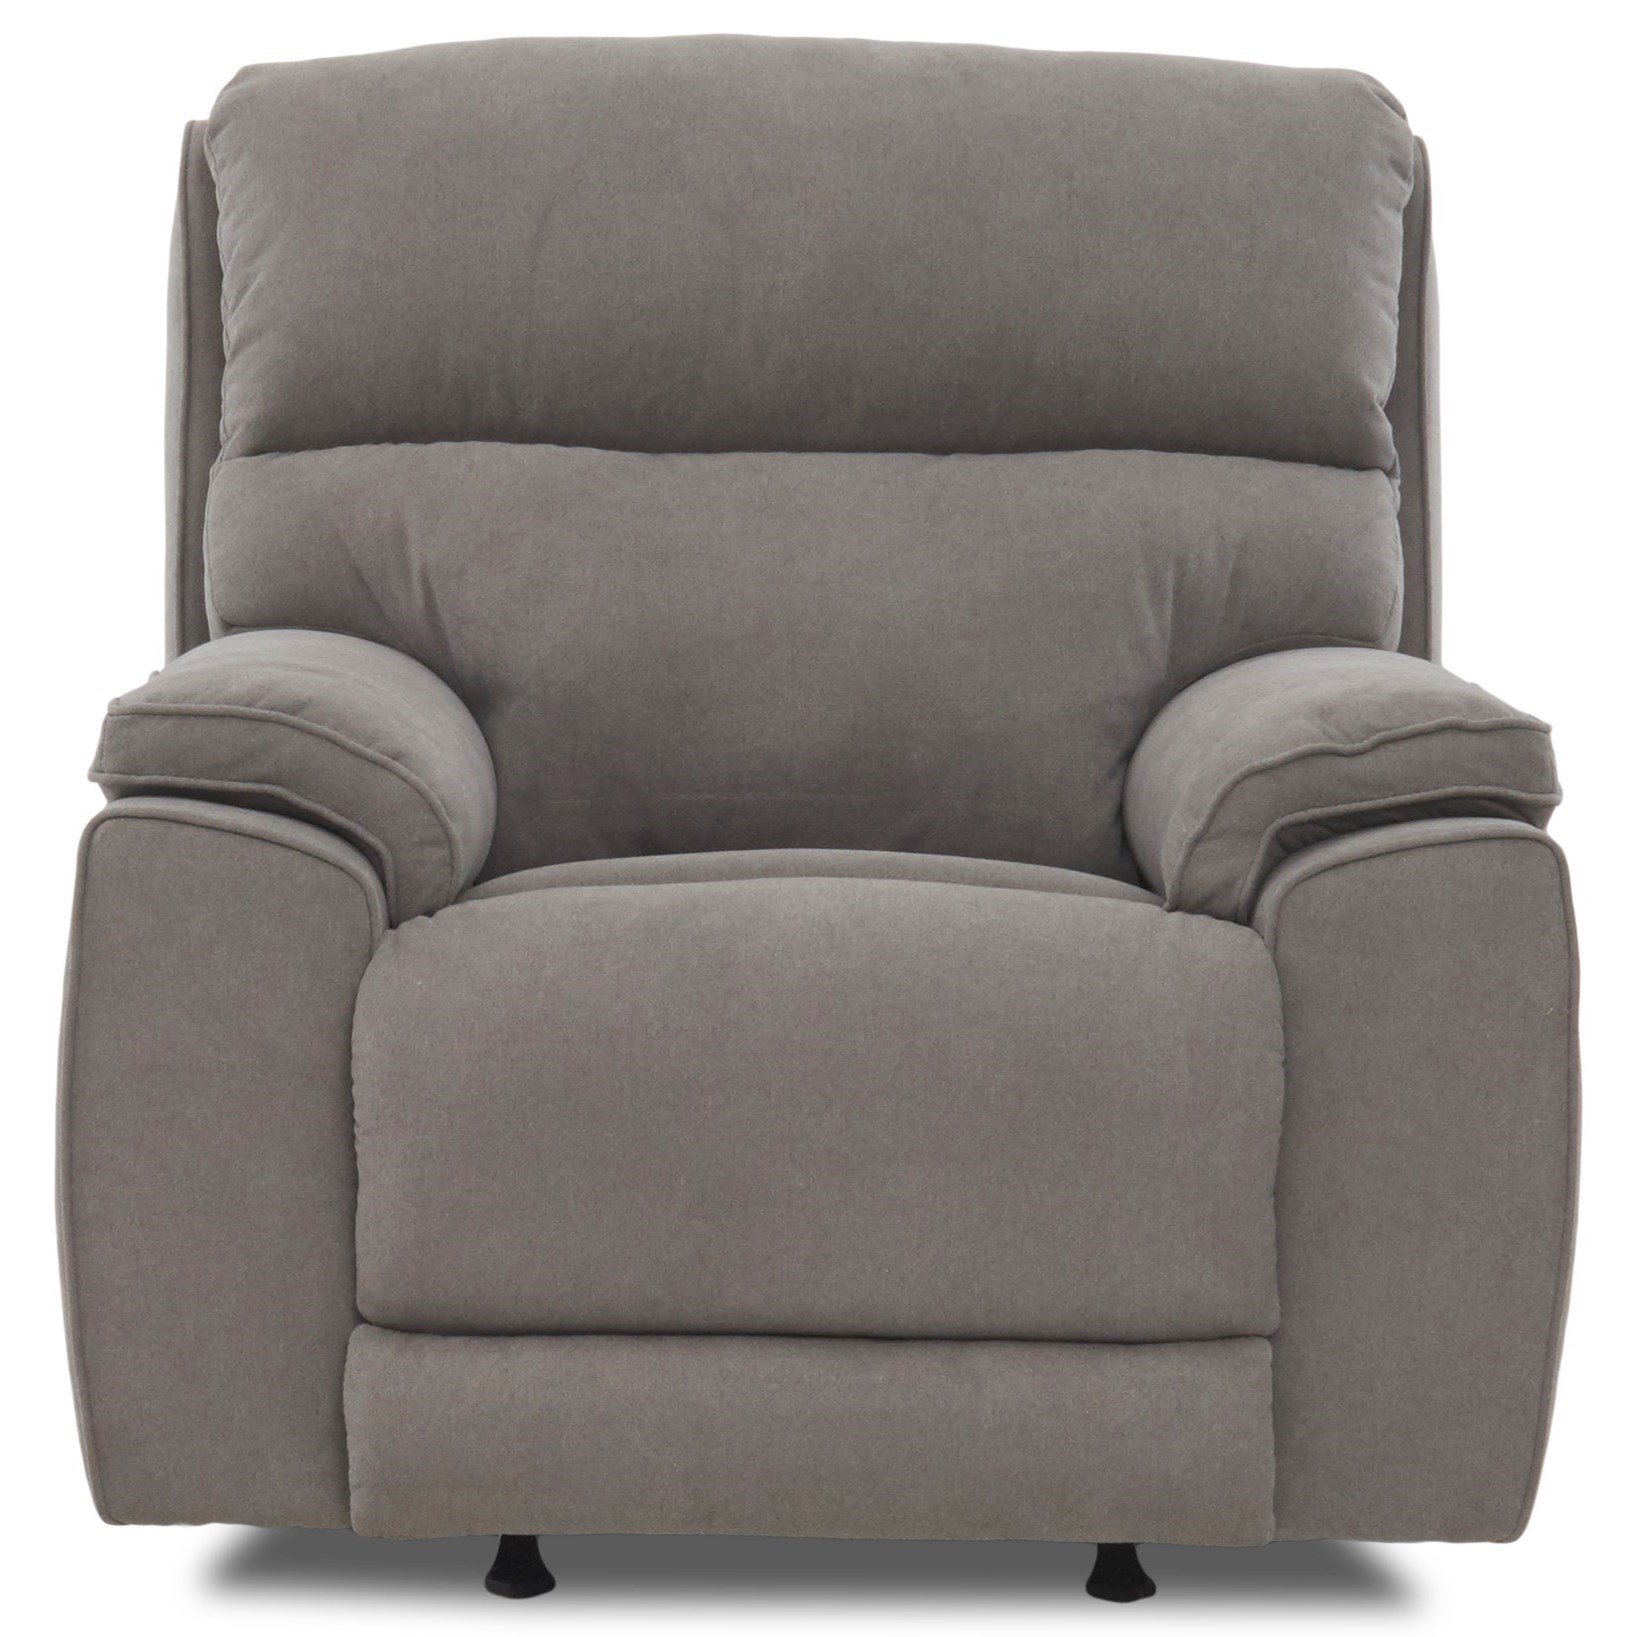 Power Reclining Chair with USB Charging Port